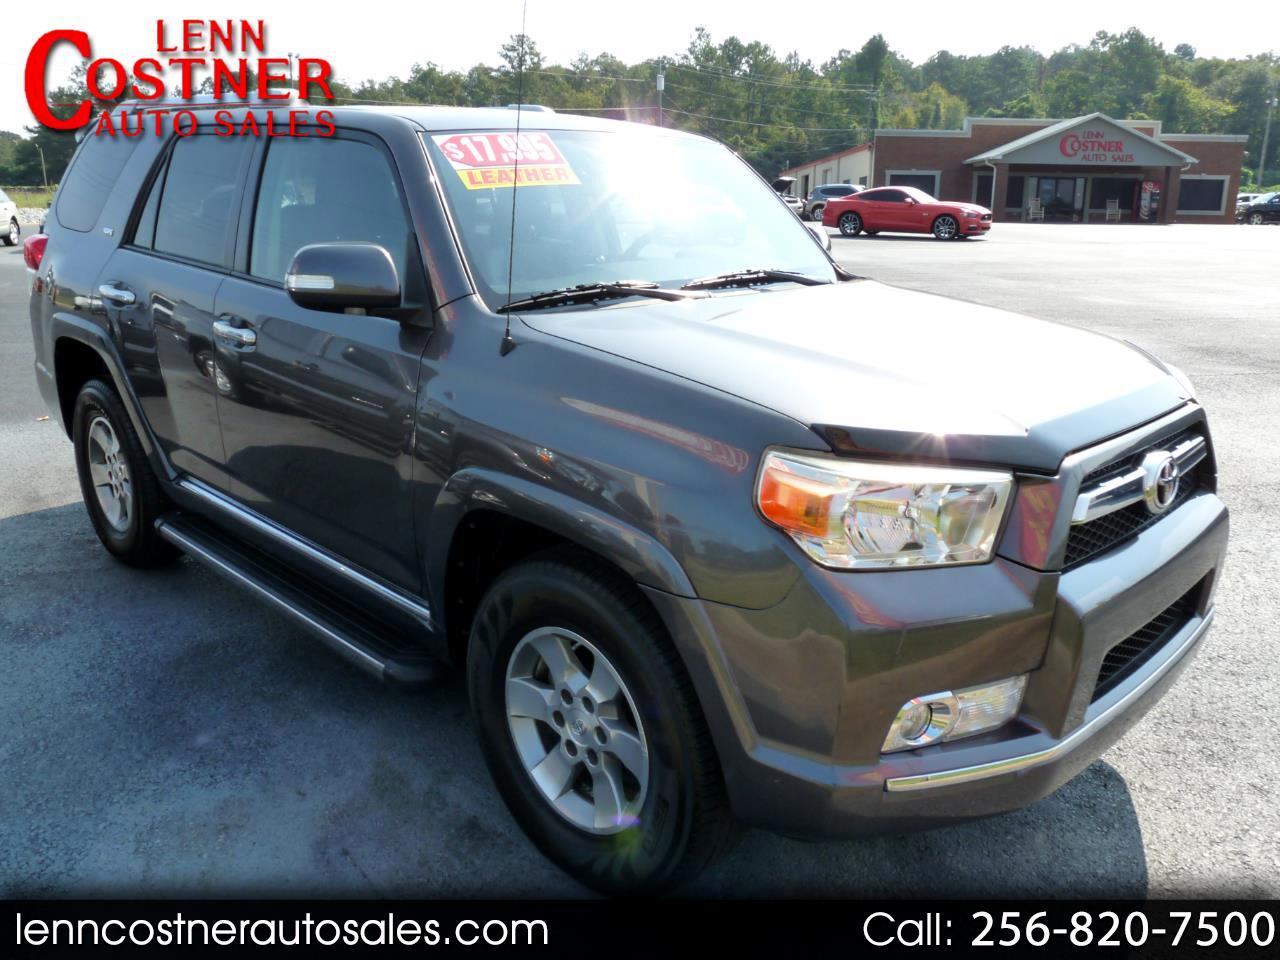 2010 Toyota 4Runner RWD 4dr V6 Limited (Natl)